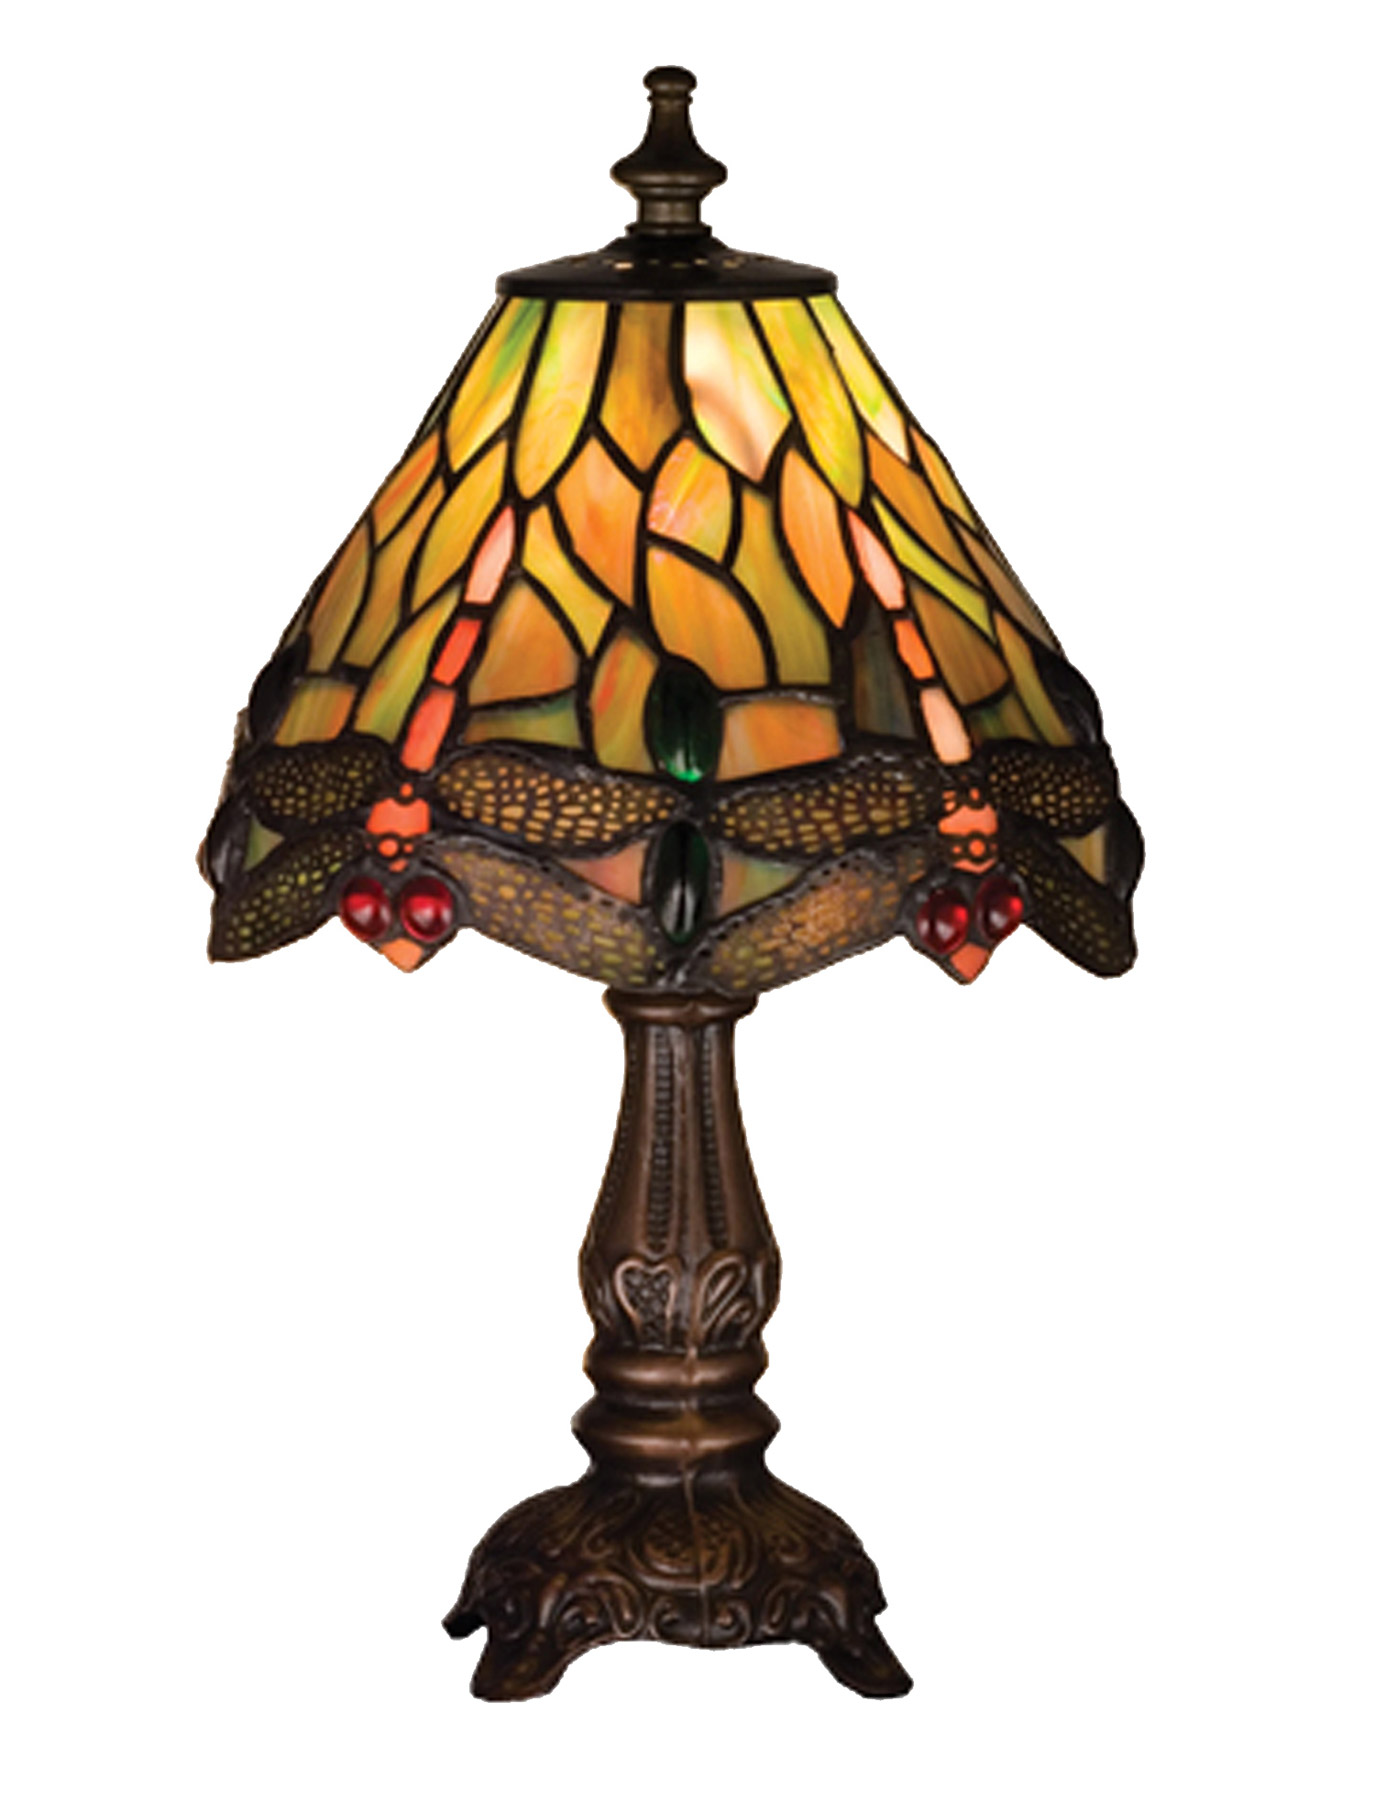 home lamps table lamps accent lamps meyda 26613. Black Bedroom Furniture Sets. Home Design Ideas